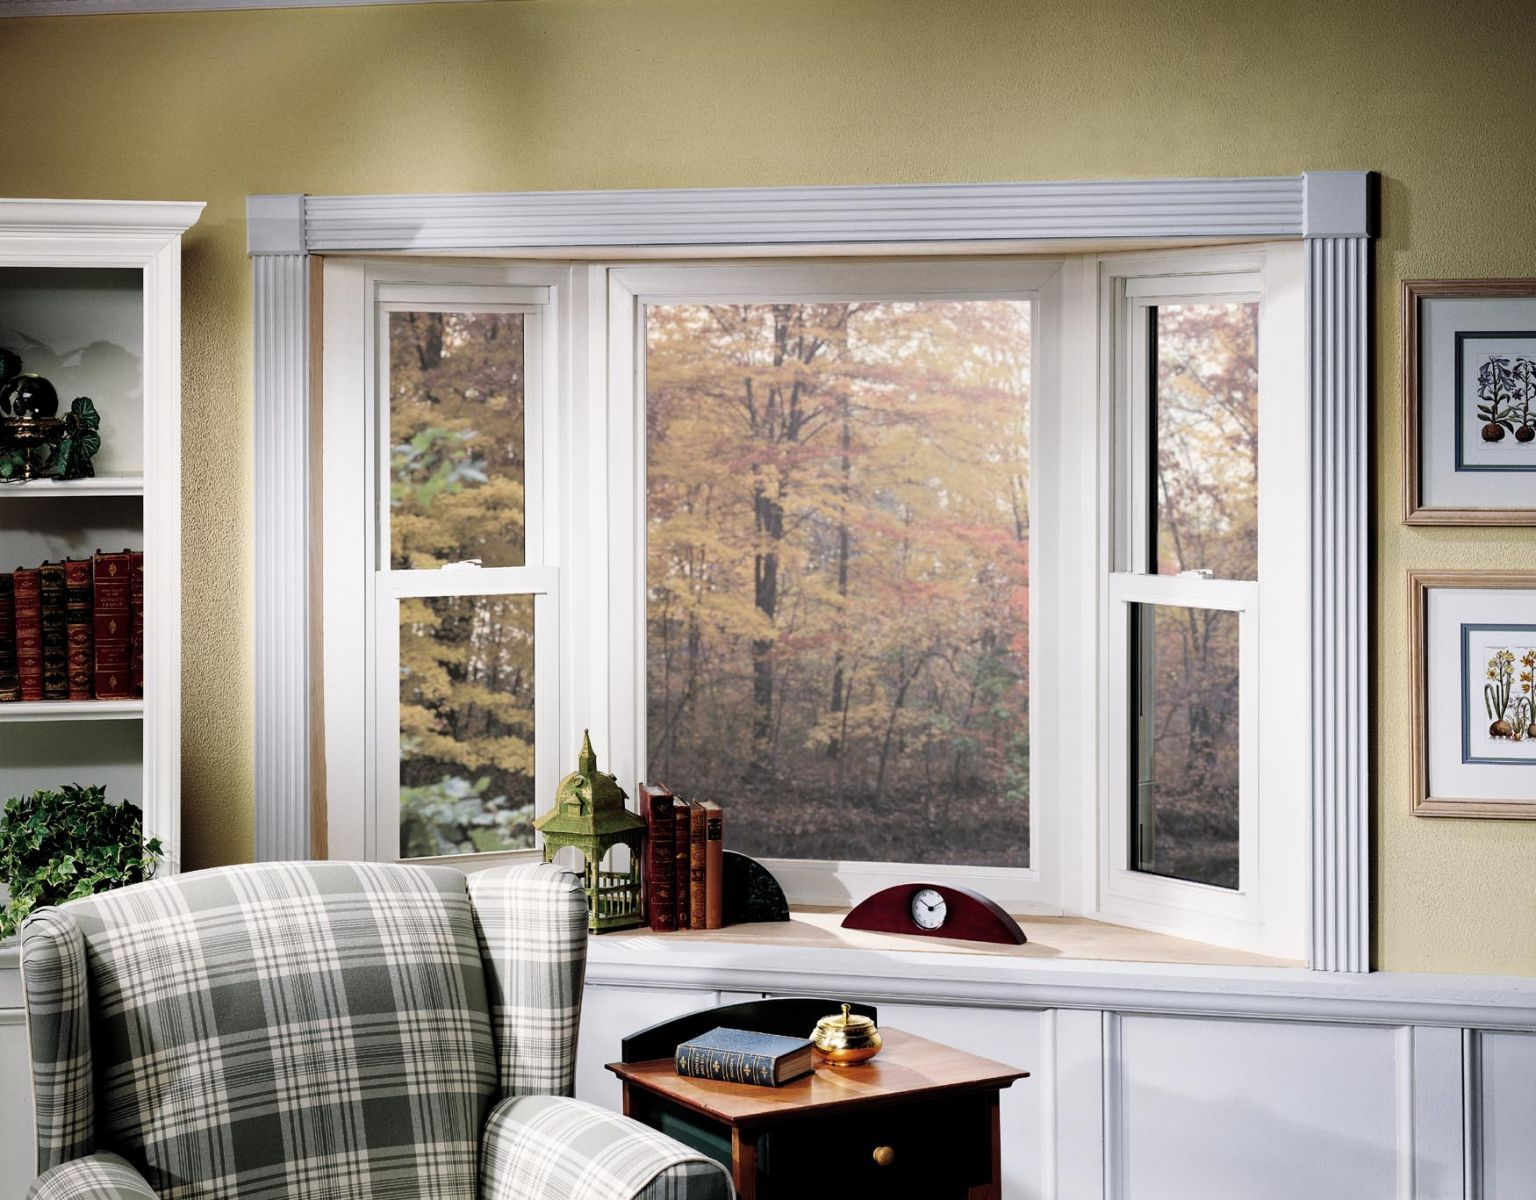 Effigy of window replacements the perfect solution for getting a stylish window outlook in your house